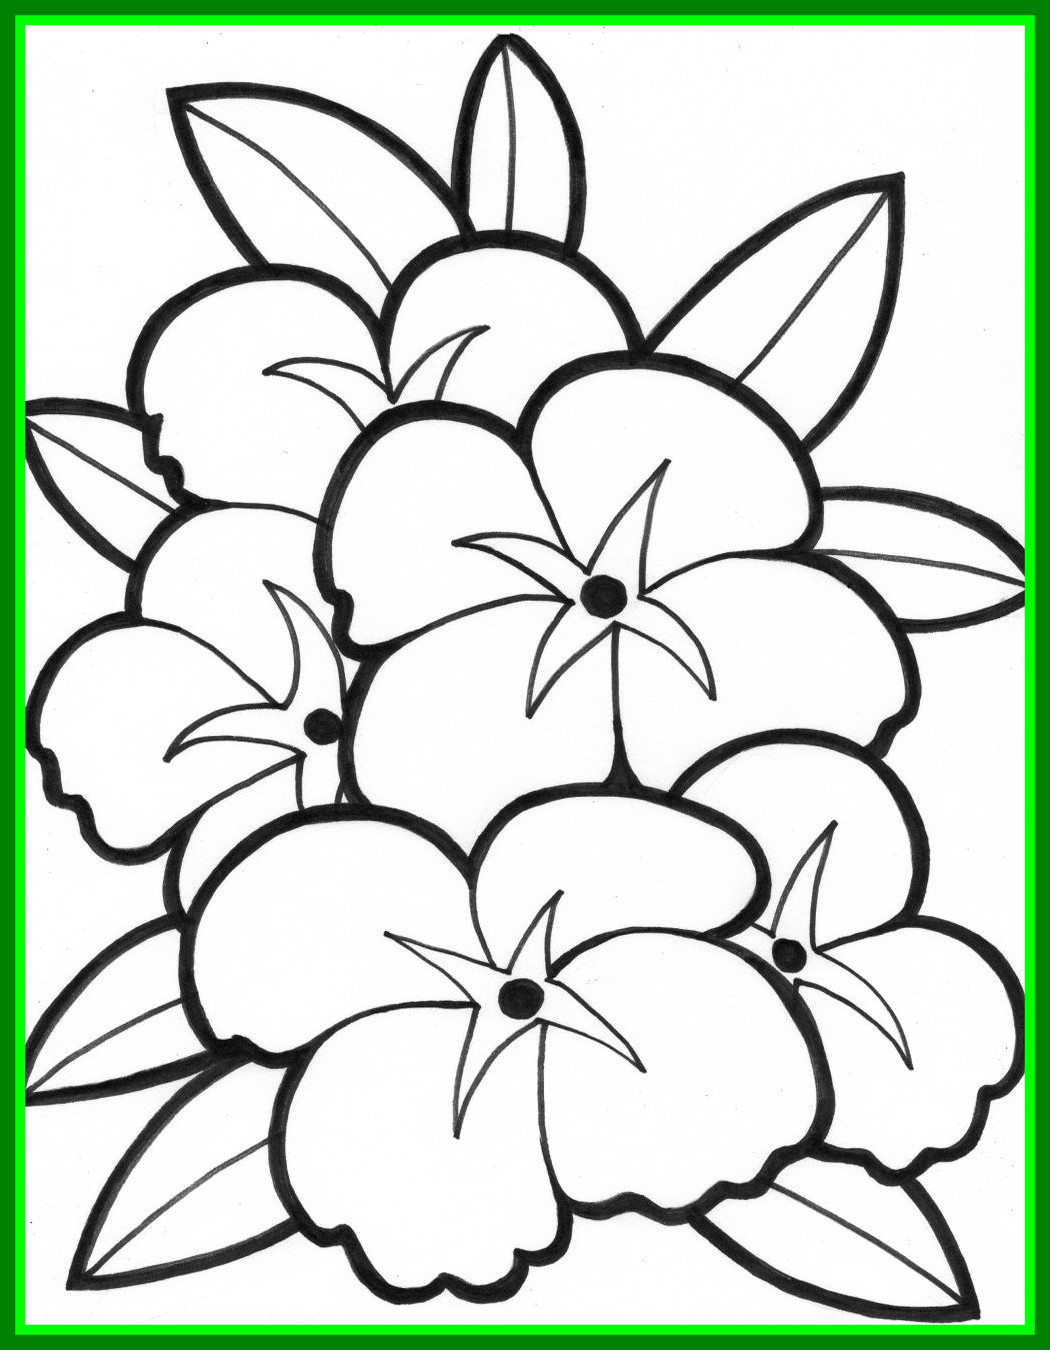 1050x1350 Chic Ant Coloring Pages For Preschoolers To Print Man Farm Bully